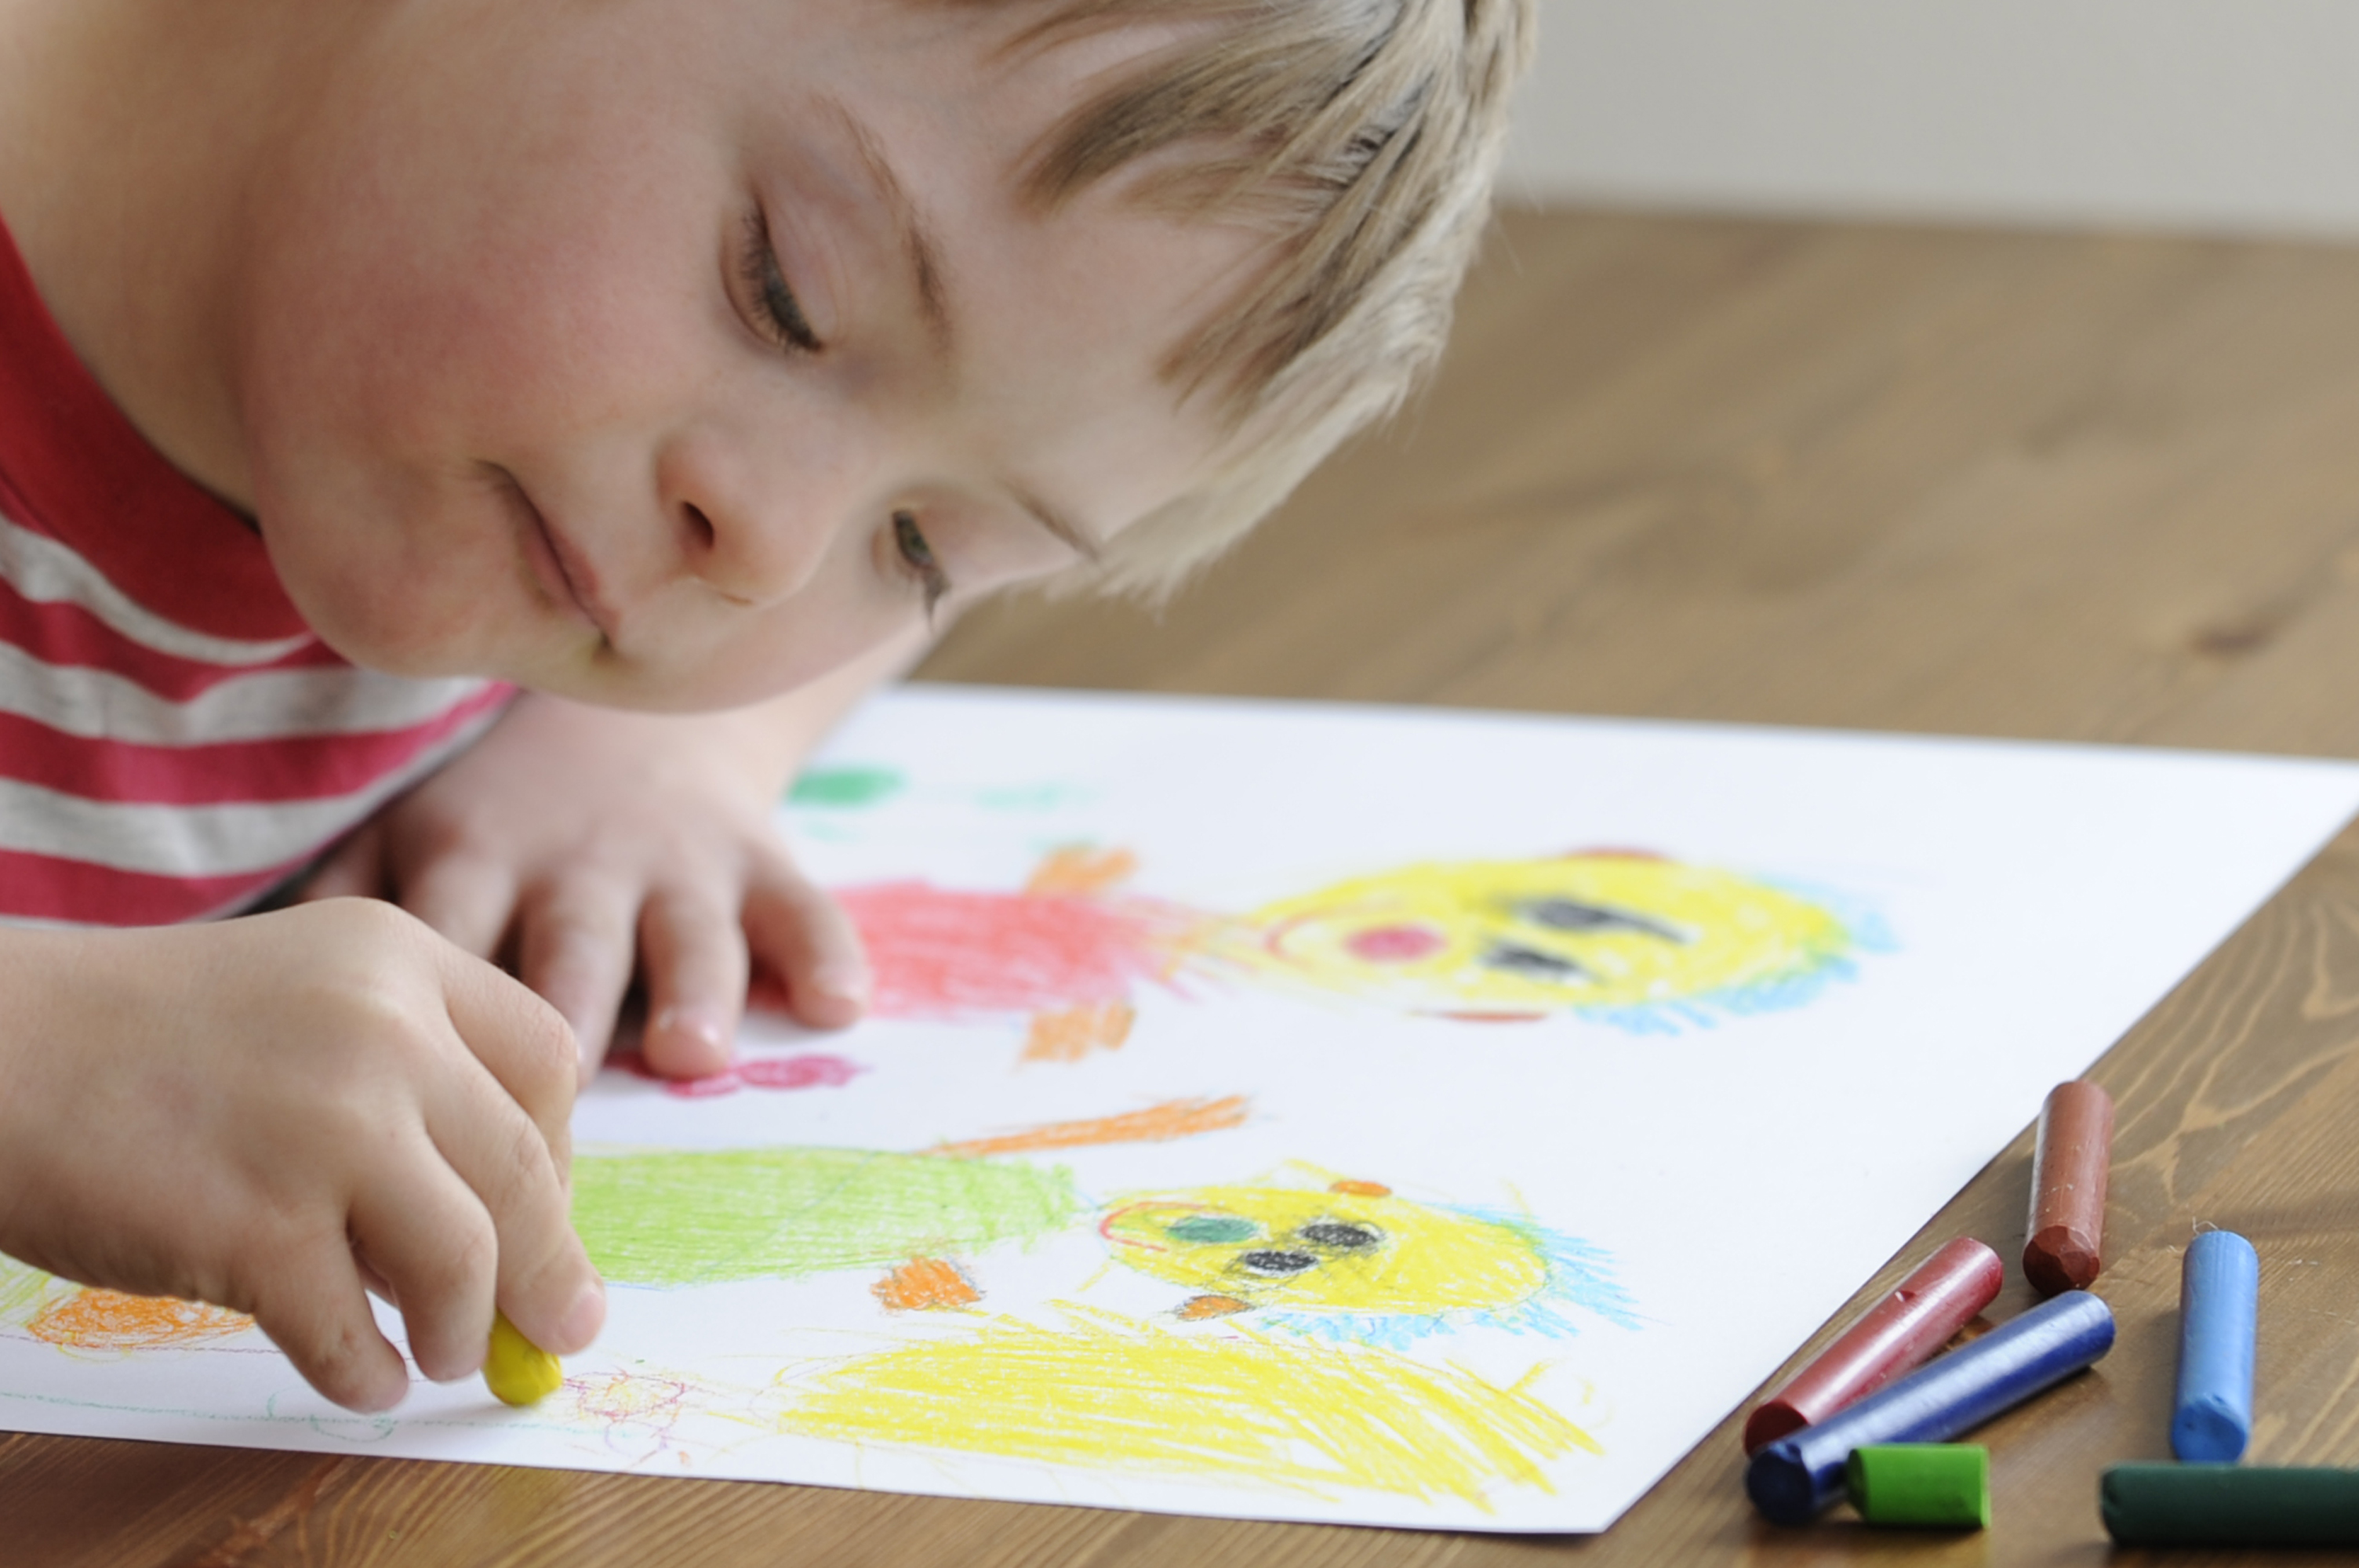 Seven year old boy with Down Syndrome is drawing. More photo's of this boy: [url=http://www.istockphoto.com/file_search.php?action=file&lightboxID=7637215][img]http://www.istockphoto.com/file_thumbview_approve.php?size=1&id=12556002[/img][img]http://www.istockphoto.com/file_thumbview_approve.php?size=1&id=12554213[/img][img]http://www.istockphoto.com/file_thumbview_approve.php?size=1&id=12555845[/img][img]http://www.istockphoto.com/file_thumbview_approve.php?size=1&id=12555667[/img][img]http://www.istockphoto.com/file_thumbview_approve.php?size=1&id=11732977[/img][img]http://www.istockphoto.com/file_thumbview_approve.php?size=1&id=11774445[/img][img]http://www.istockphoto.com/file_thumbview_approve.php?size=1&id=11861829[/img][/url]